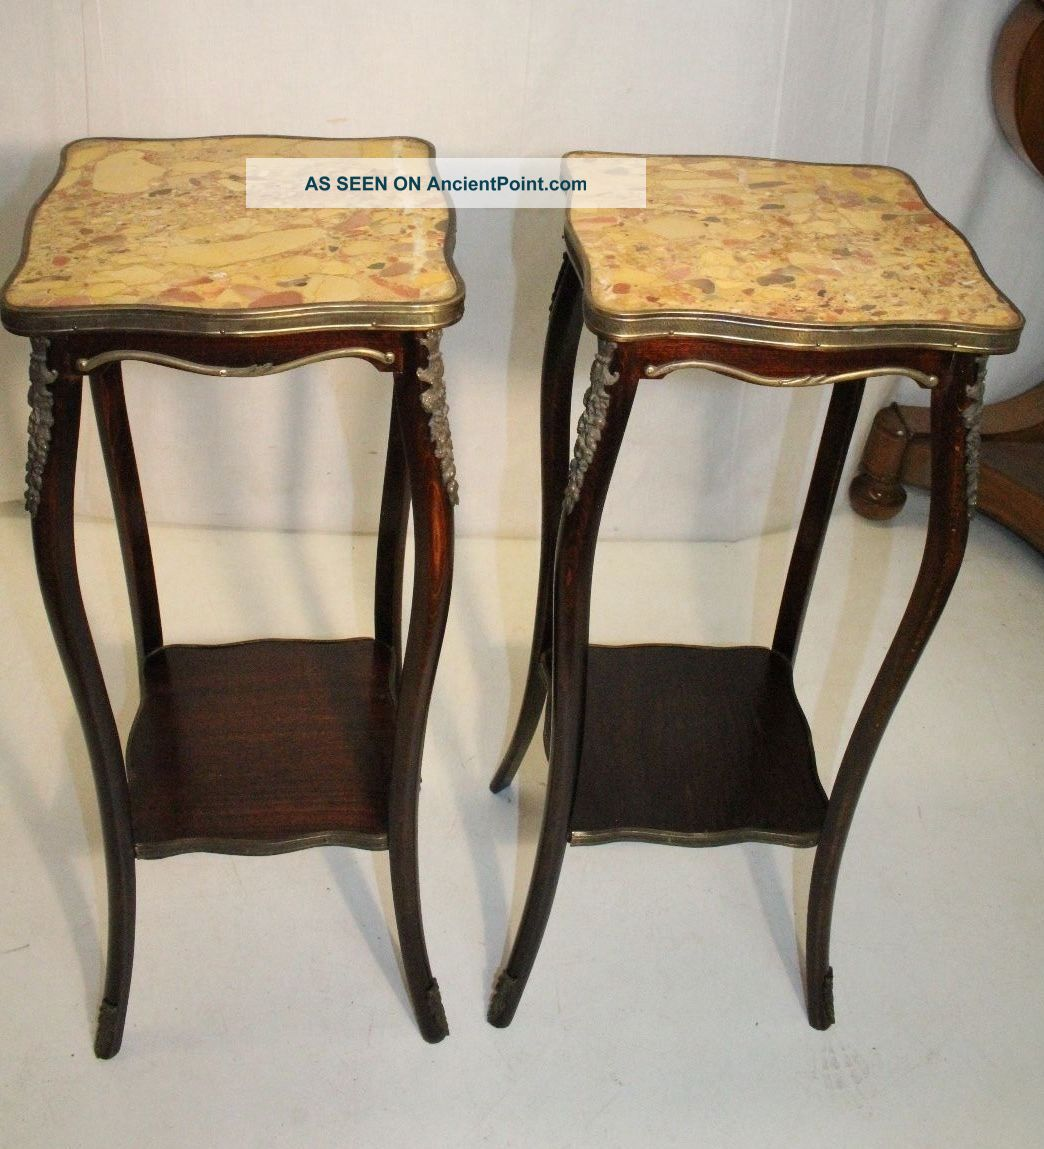 Gorgeous French Stayl Mahogany Dark Walnut American Made Marble Top Side Tables 1900-1950 photo